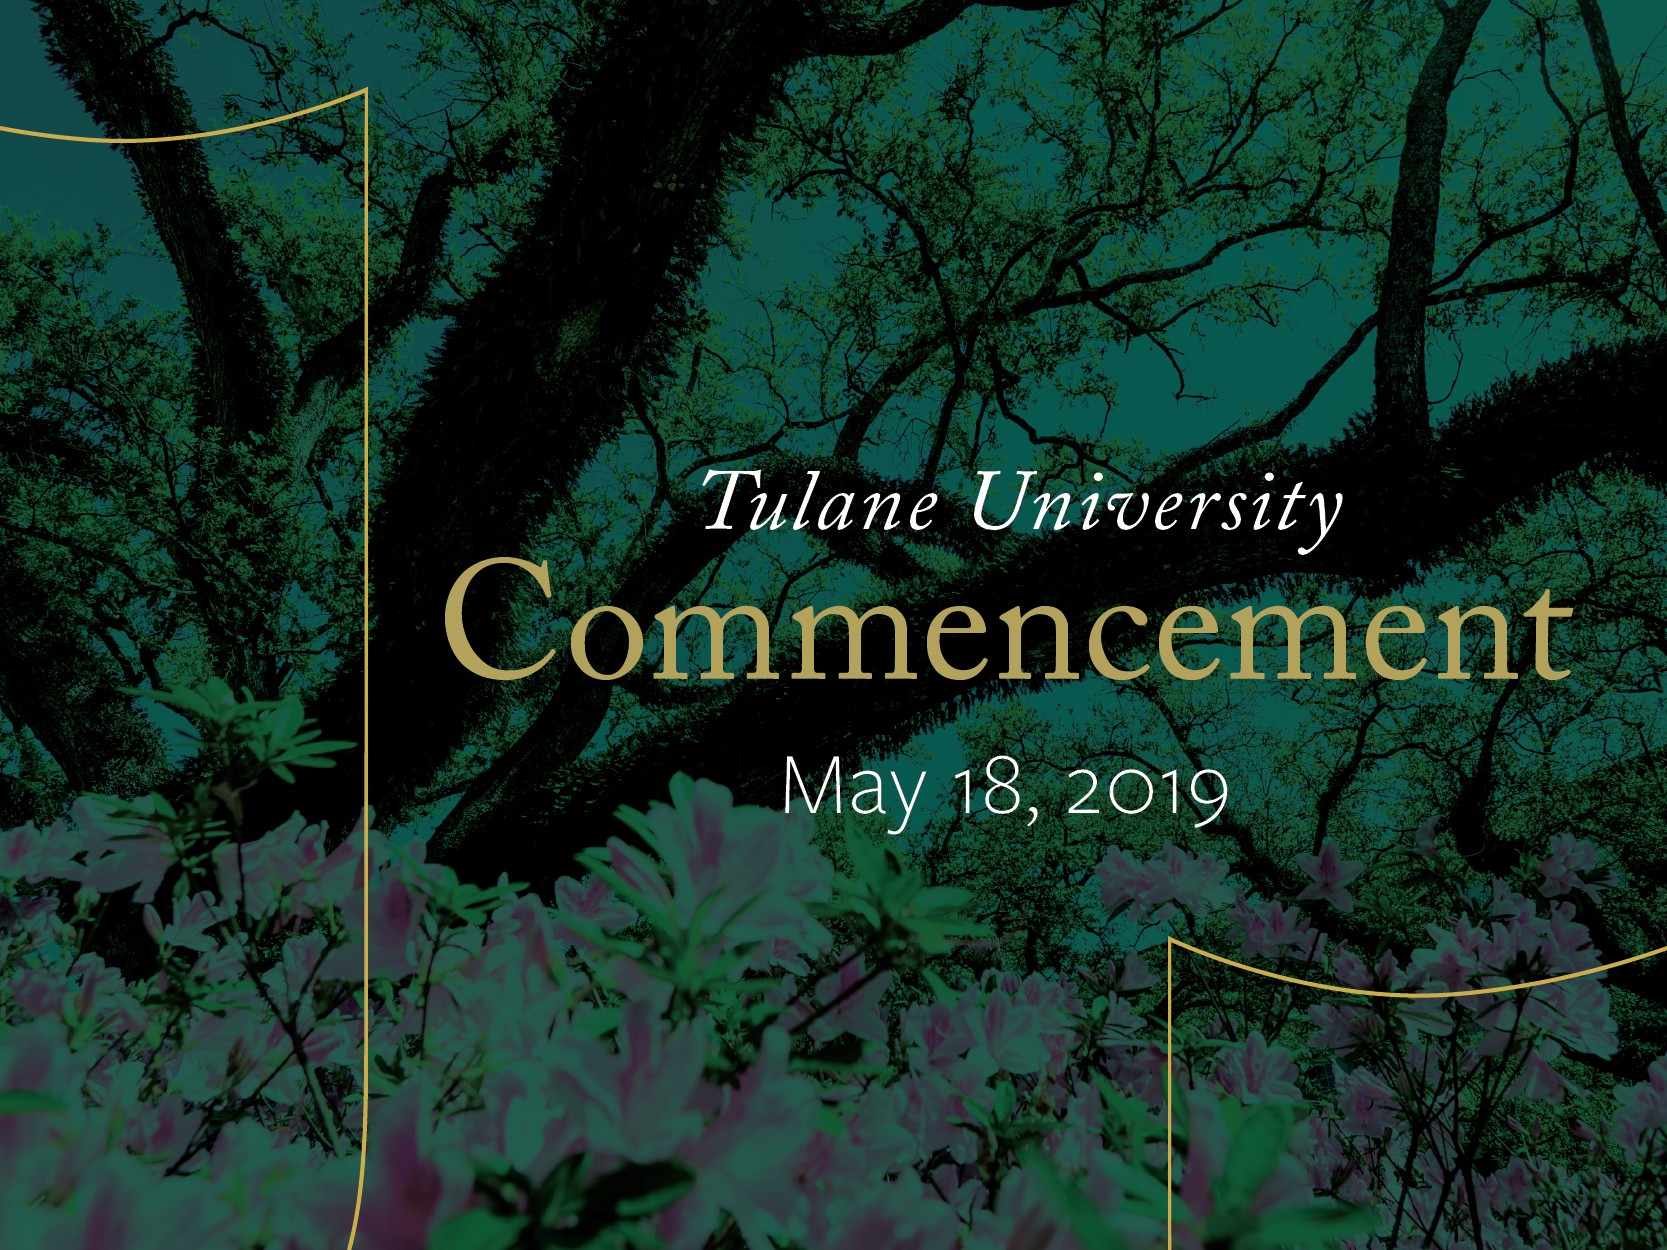 Commencement 2019 graphic and link